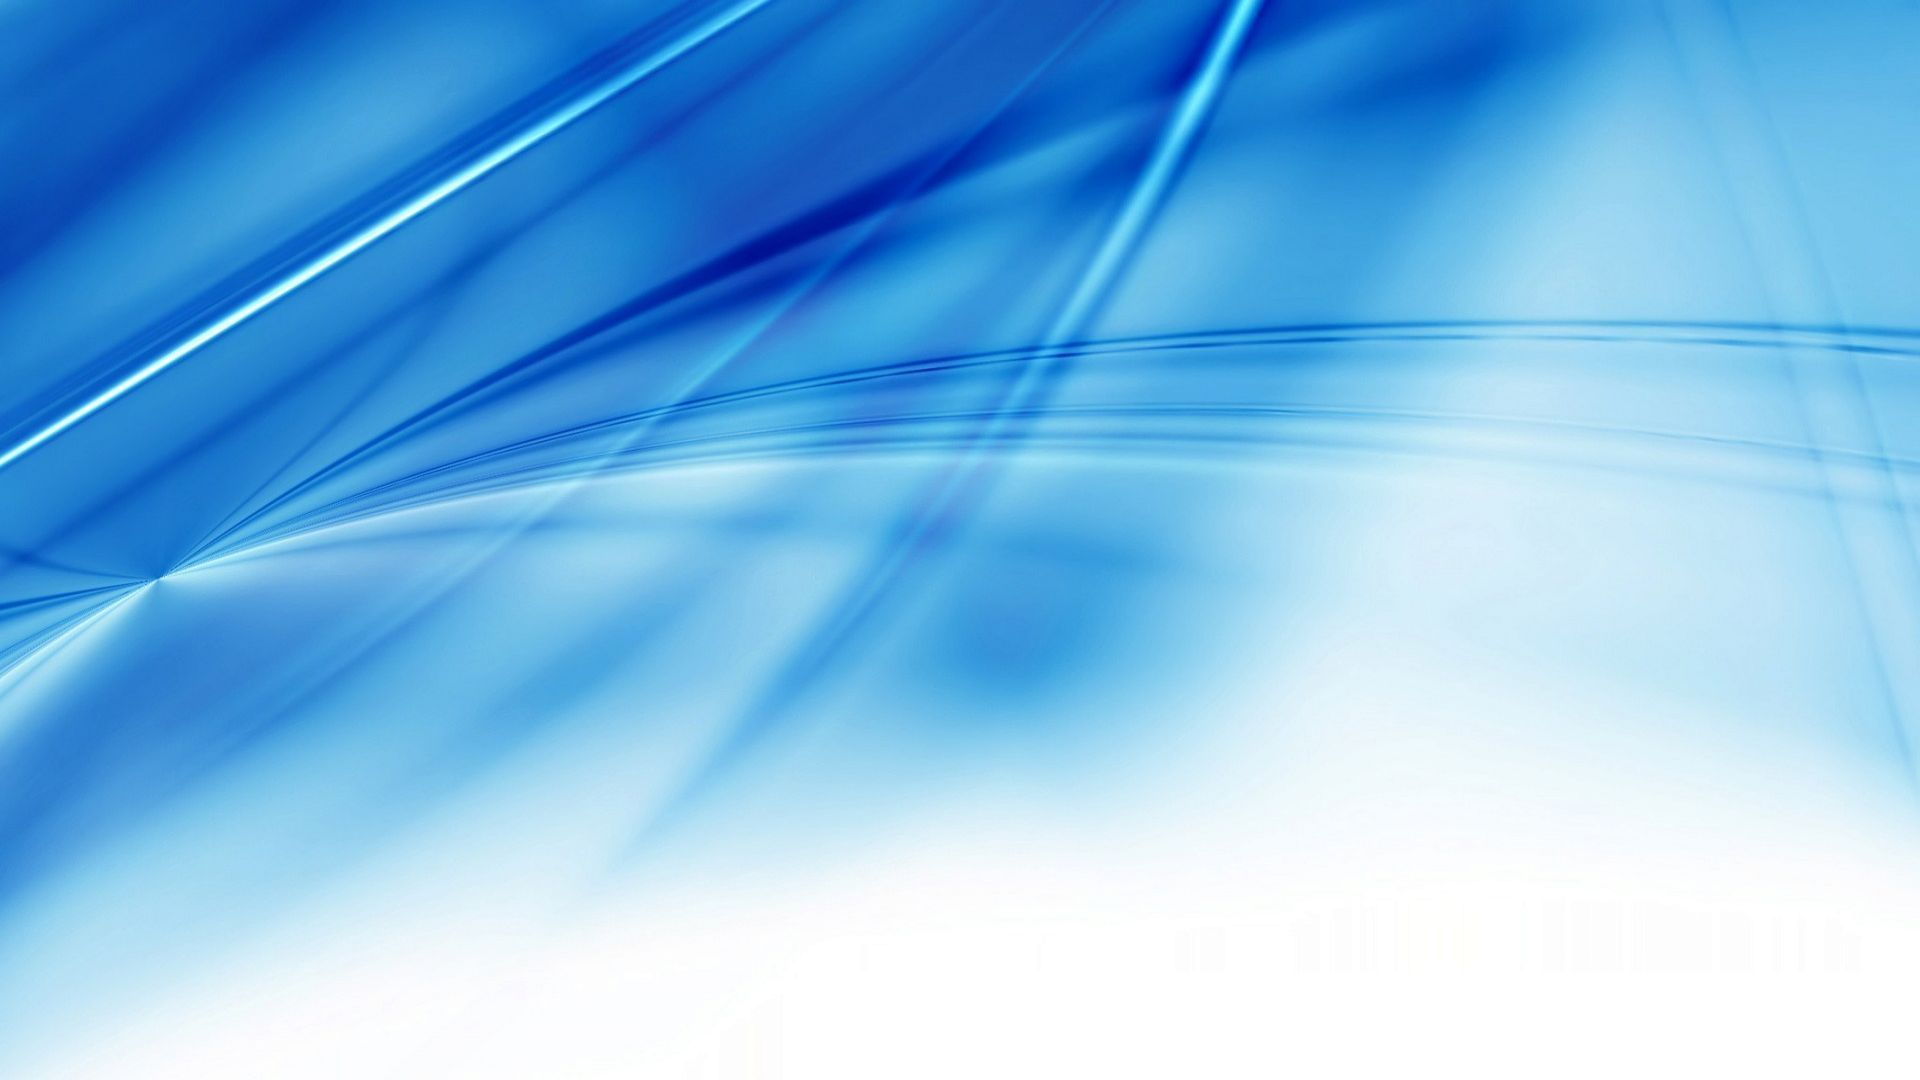 30 Hd Blue Wallpapers Backgrounds For Free Download